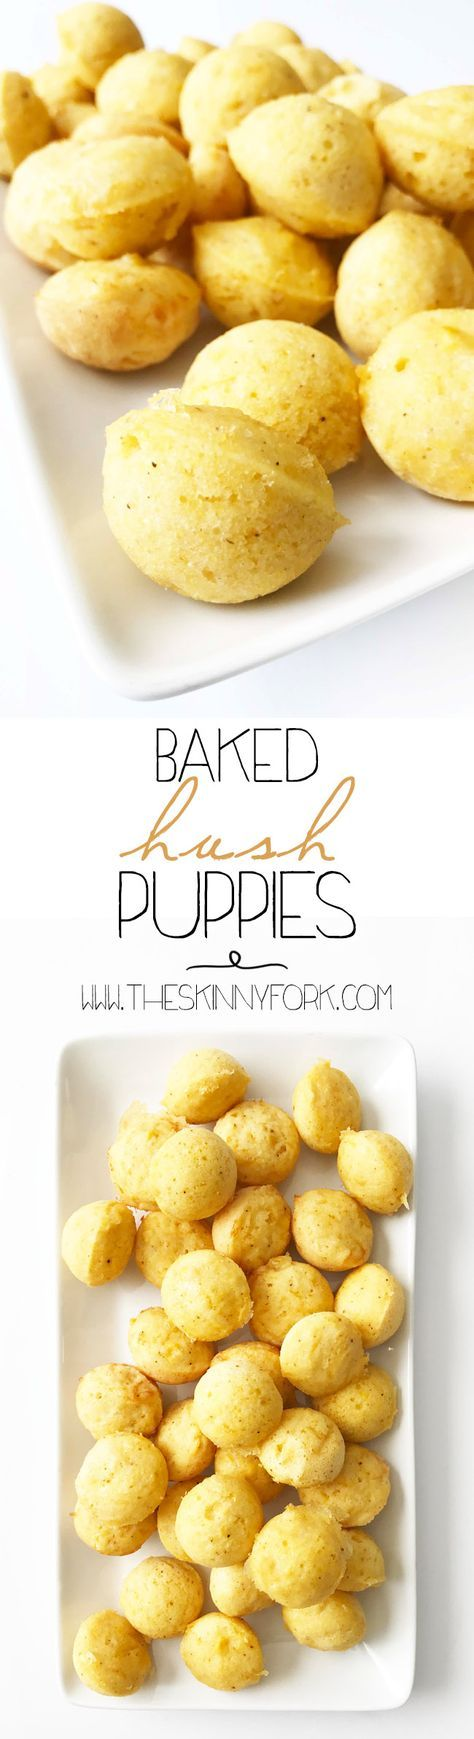 Kicking it southern style with these Baked Hush Puppies with just 4 ingredients! That's right. I've taken the classic corn bread hush puppies and baked them up instead of giving them the usual frying. TheSkinnyFork.com | Skinny & Healthy Recipes